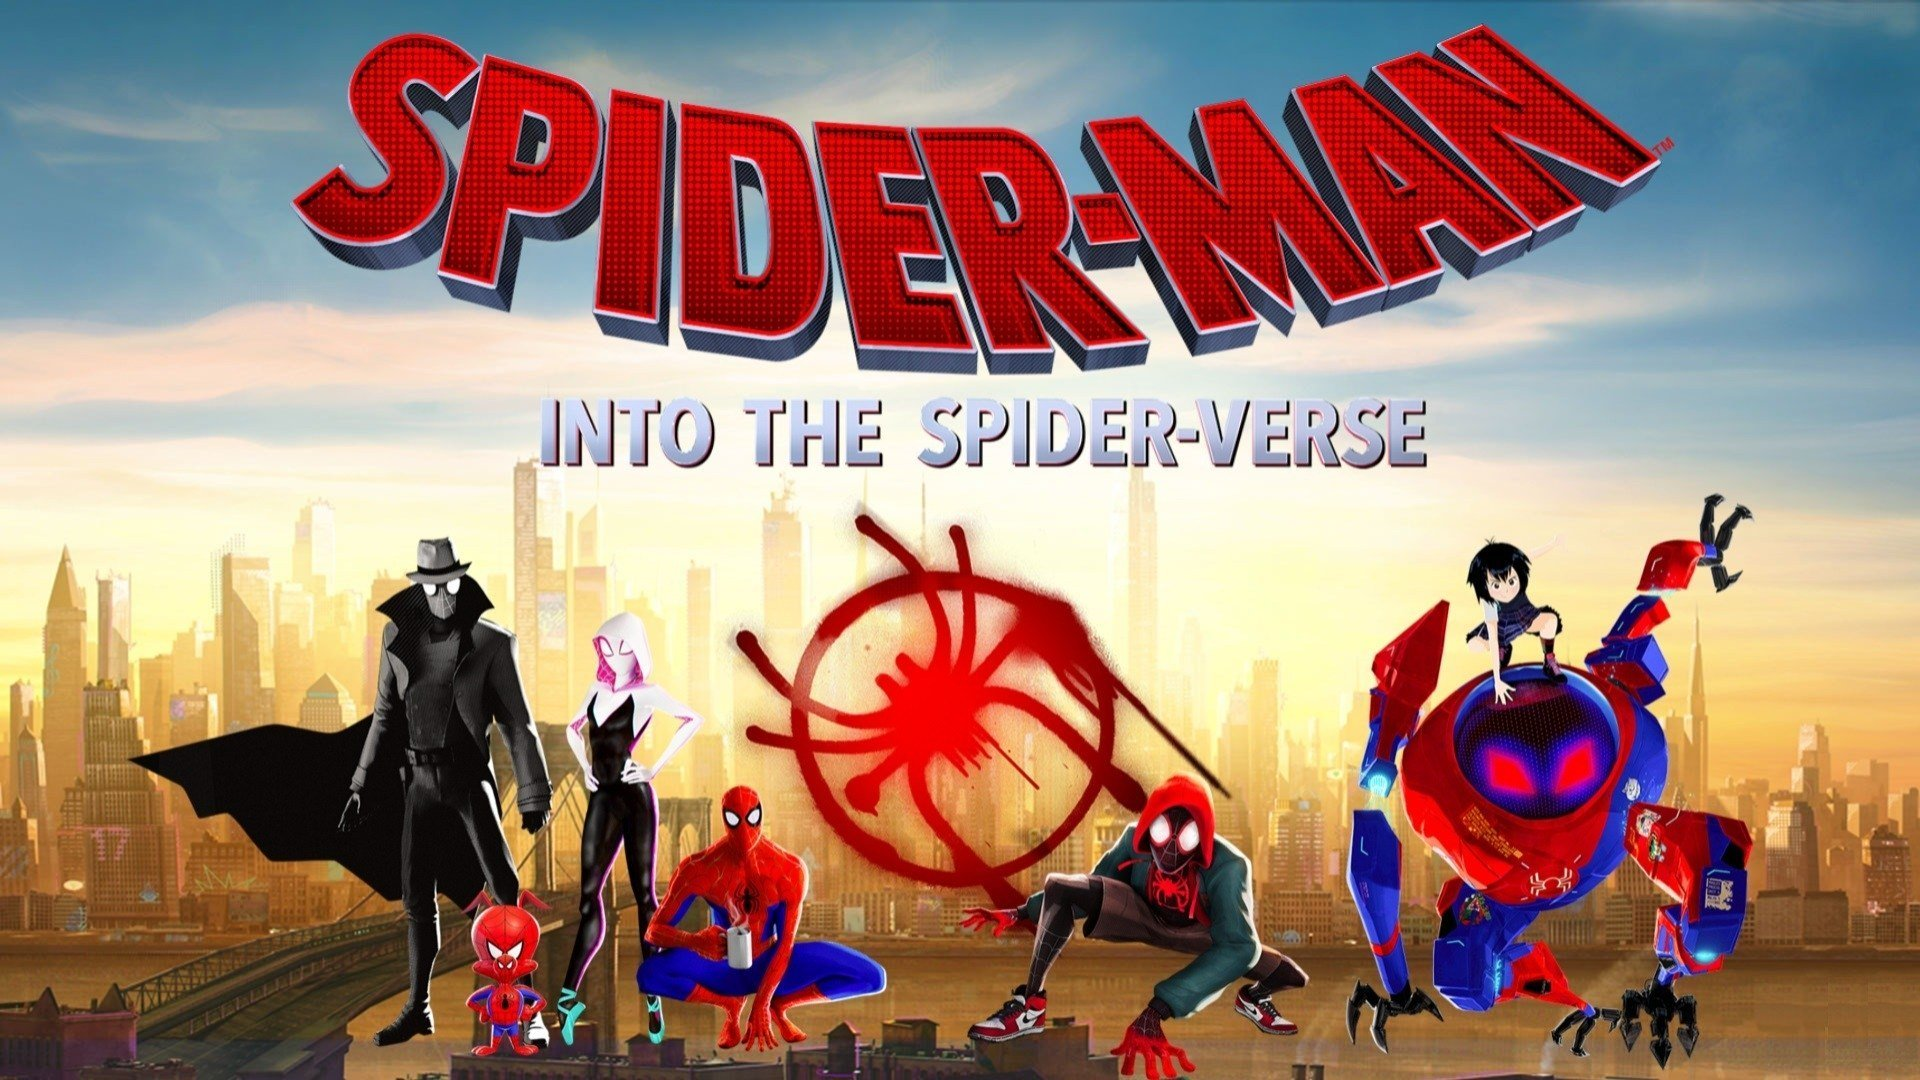 Free Summer Movies in the Park: Spiderman Into the Spiderverse at Waterfront Park